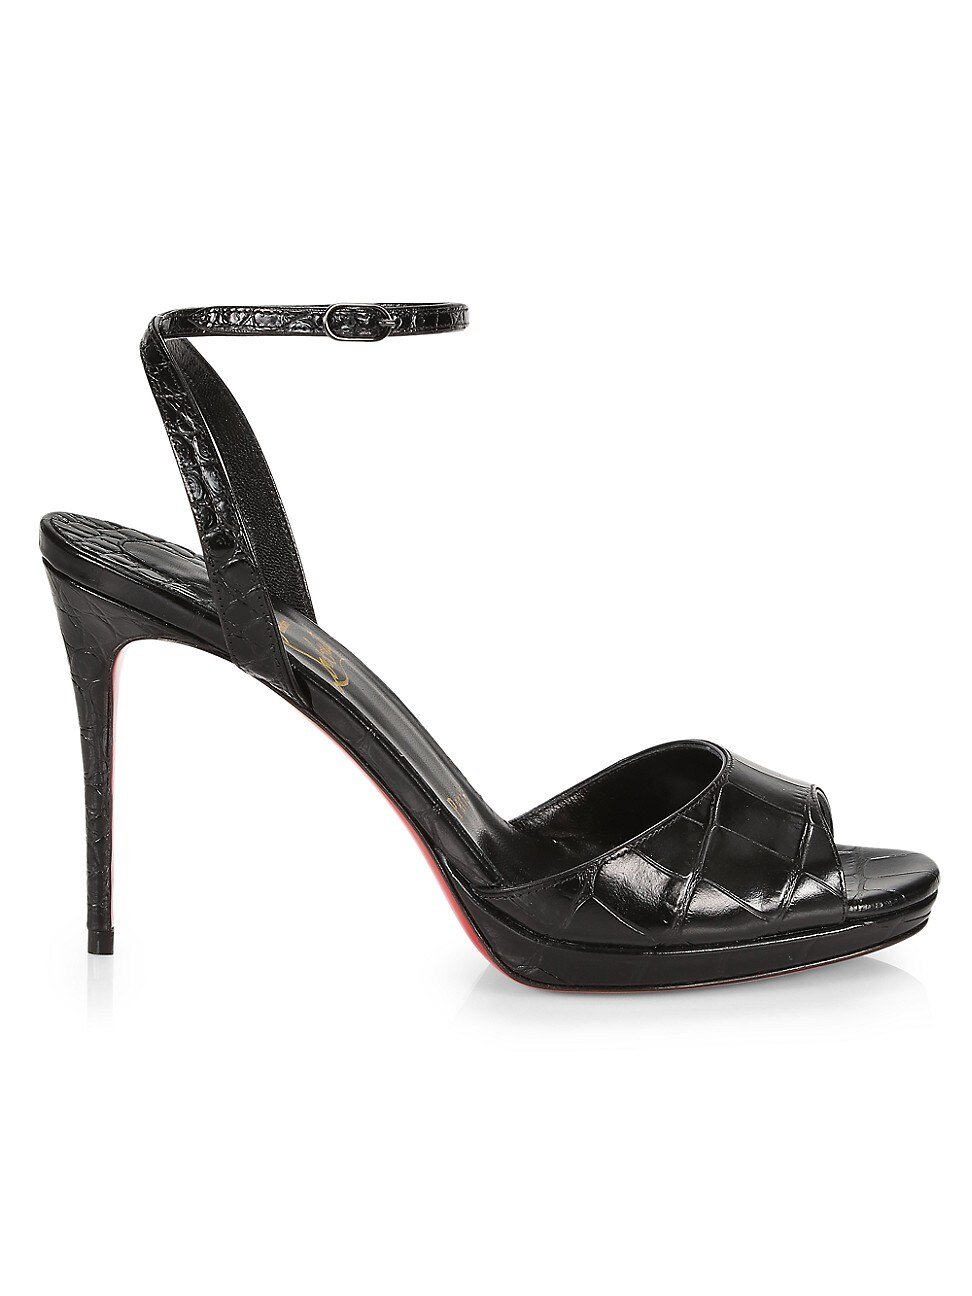 Christian Louboutin WOMEN'S LOUBILOO CROC-EMBOSSED LEATHER PLATFORM SANDALS